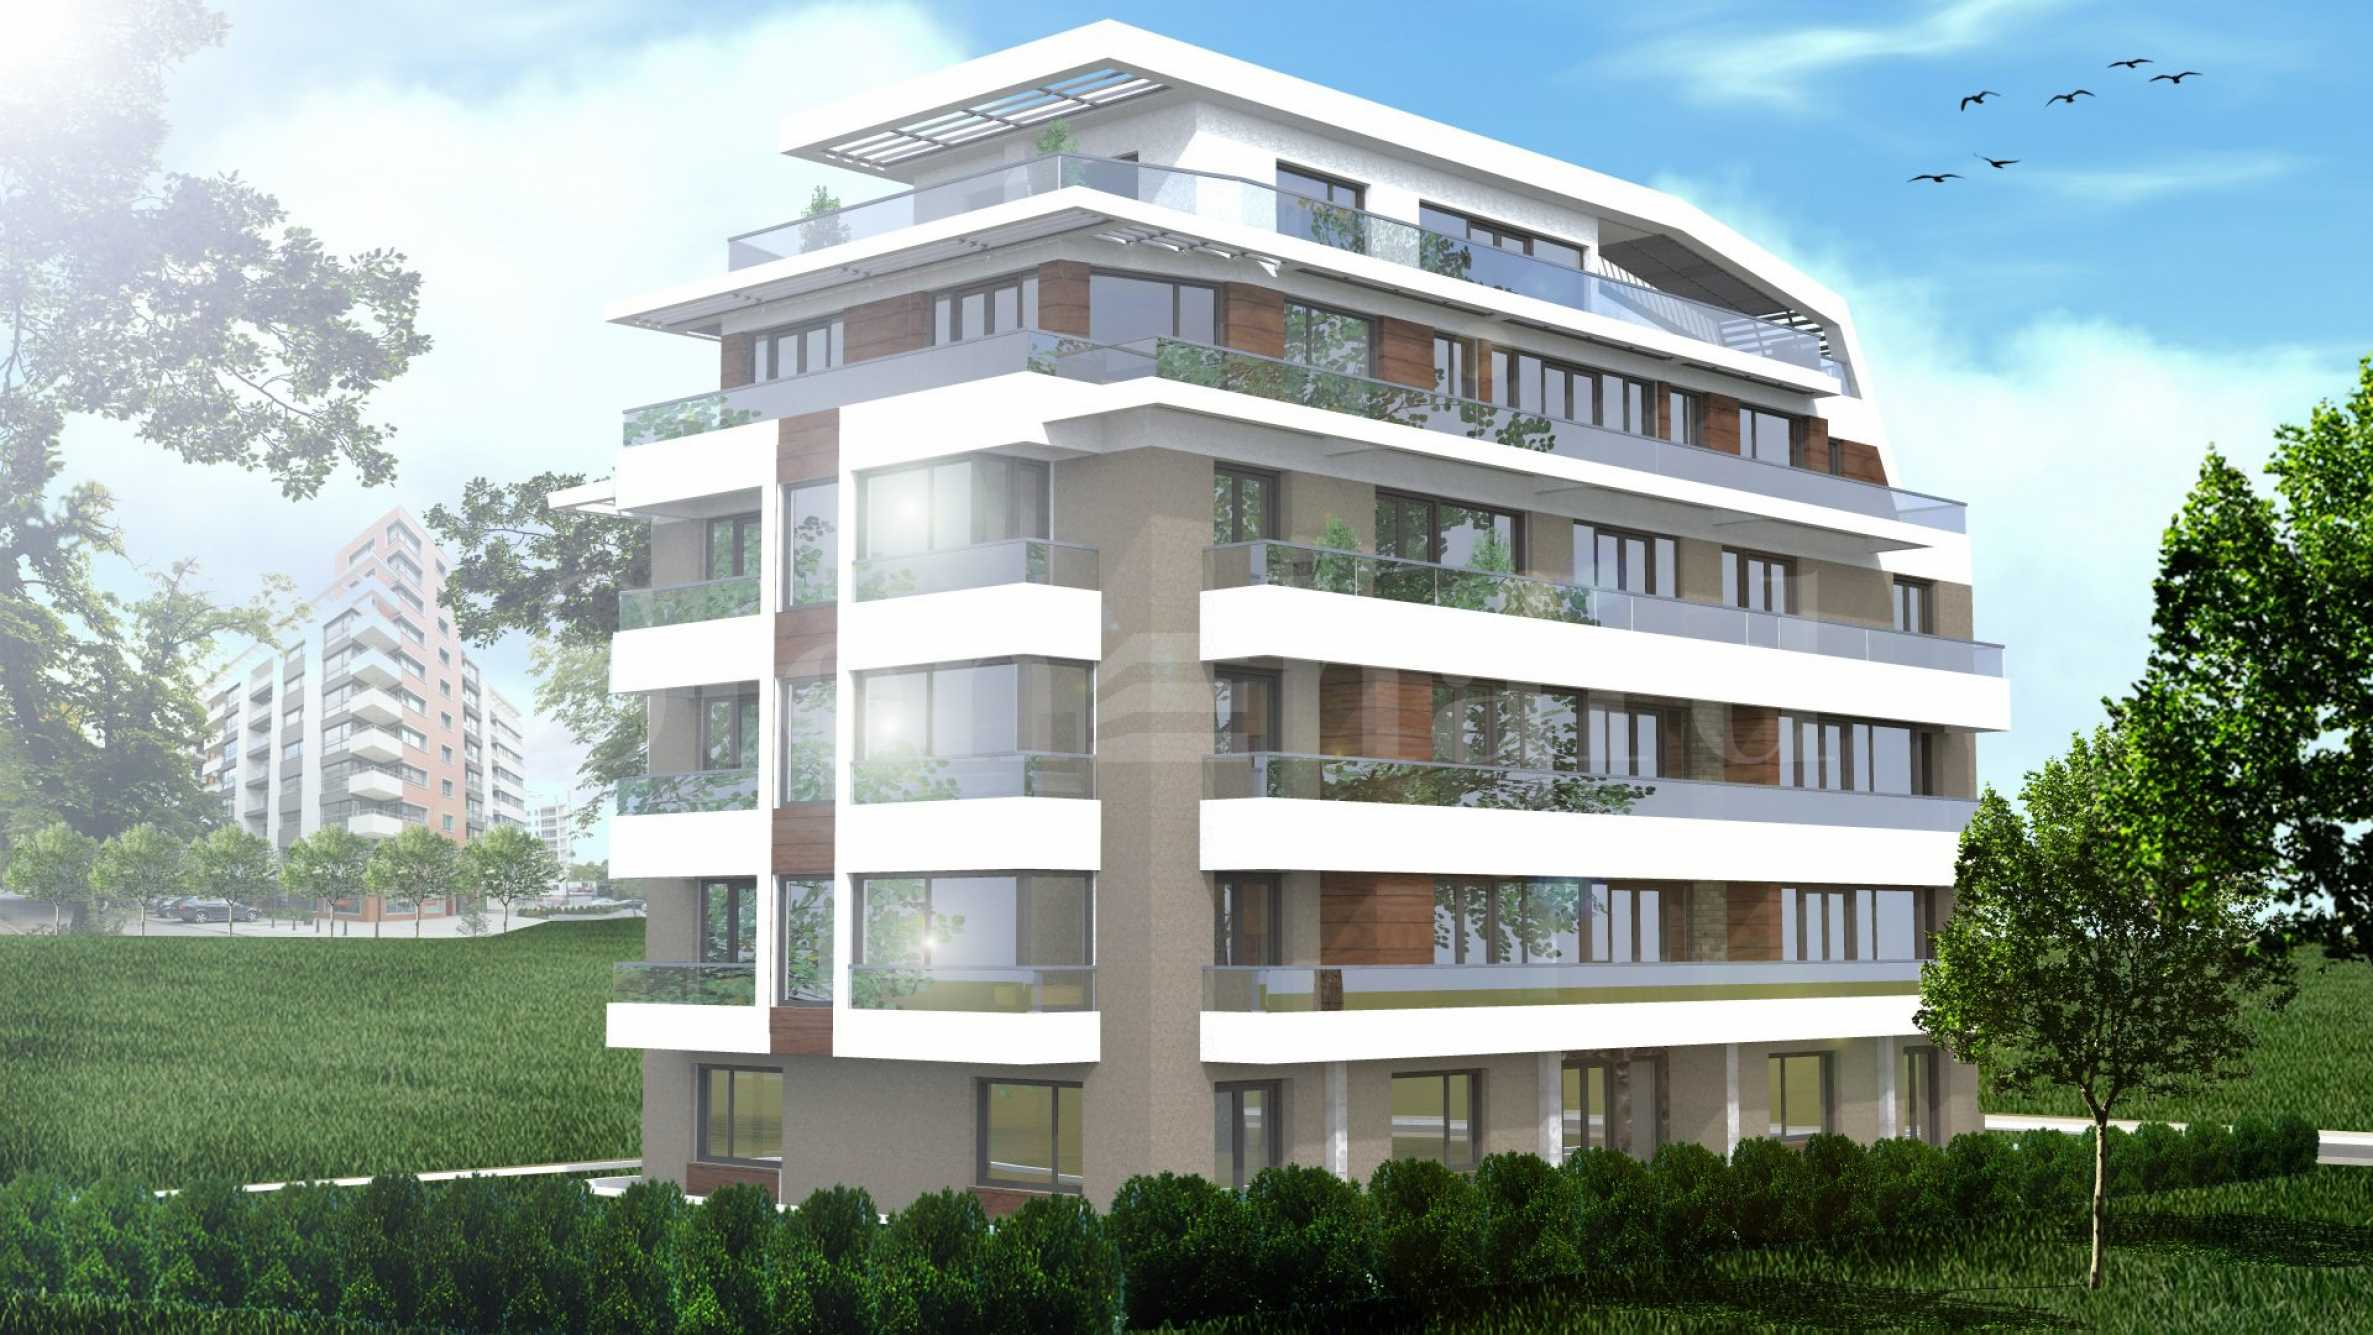 Spacious apartments in a new attractive building near parks1 - Stonehard